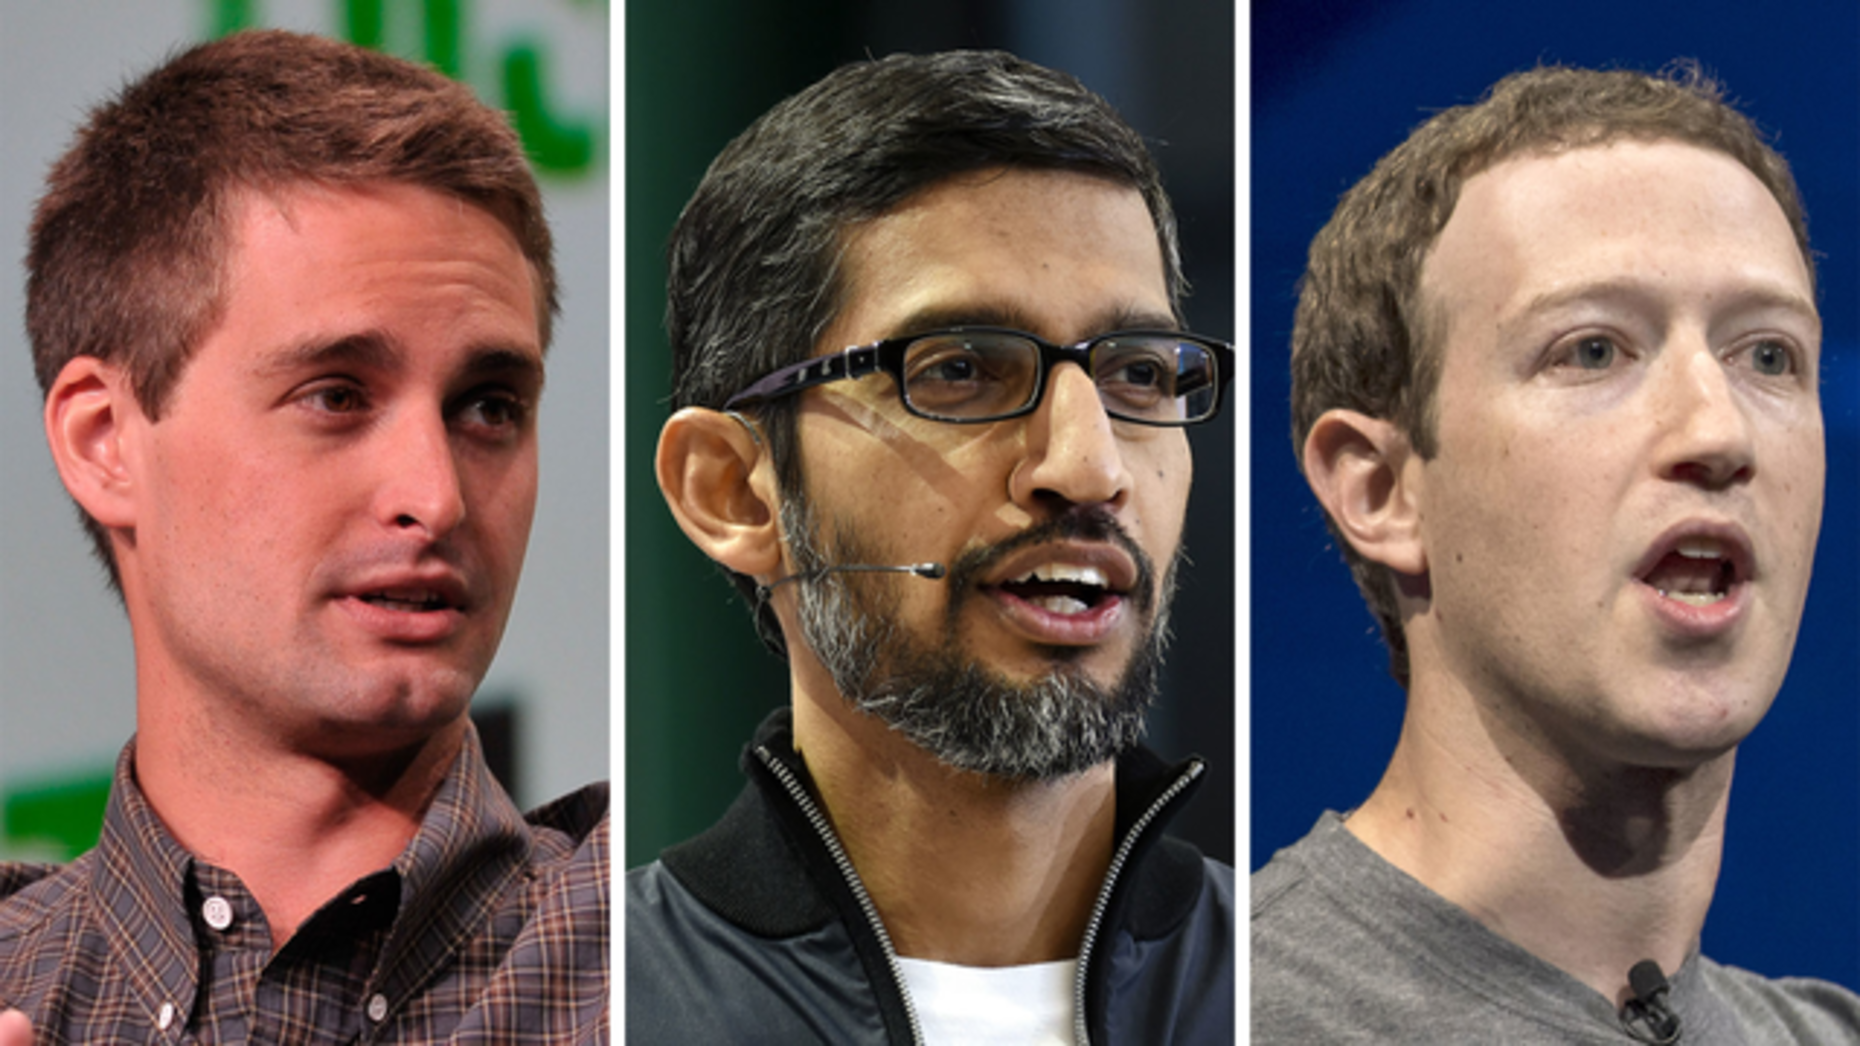 Snap's Evan Spiegel, Google's Sundar Pichai and Facebook's Mark Zuckerberg. Photos by Flickr/TechCrunch; Bloomberg.